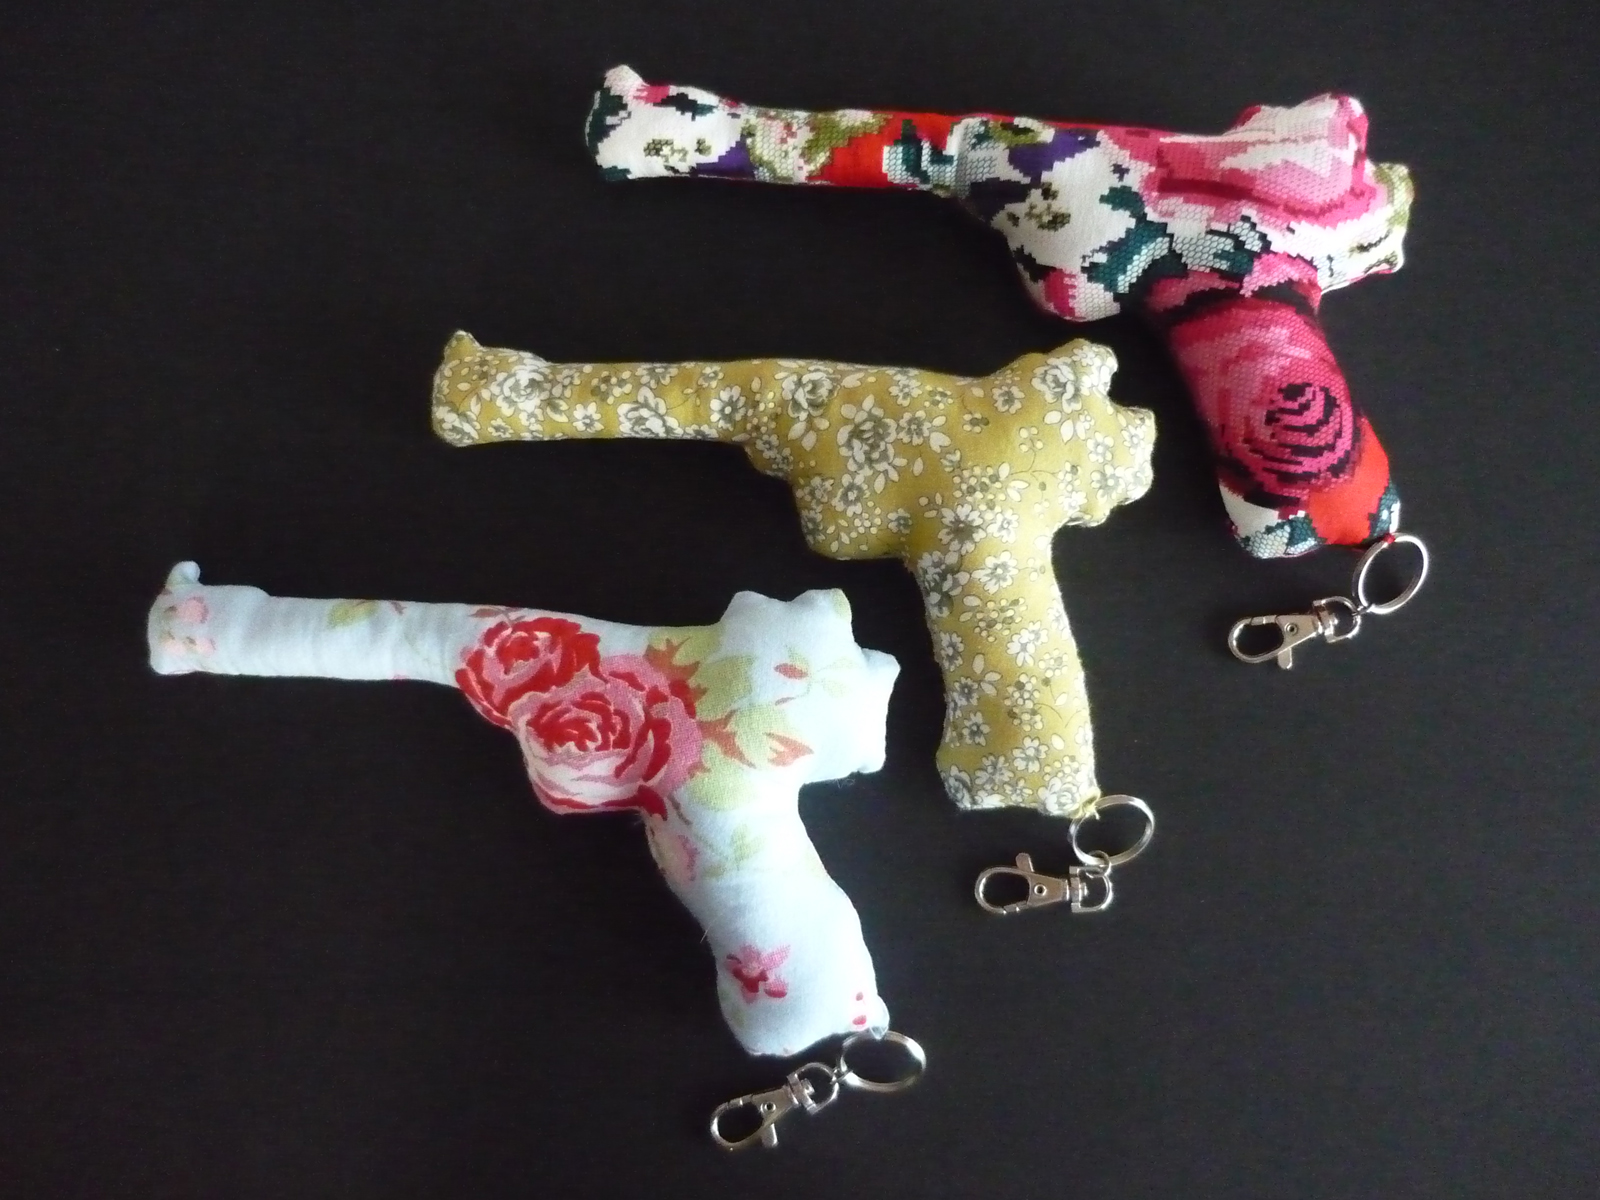 hree flower patterned fabric guns sit on a black background. All three guns have a key chain hanging from the base.